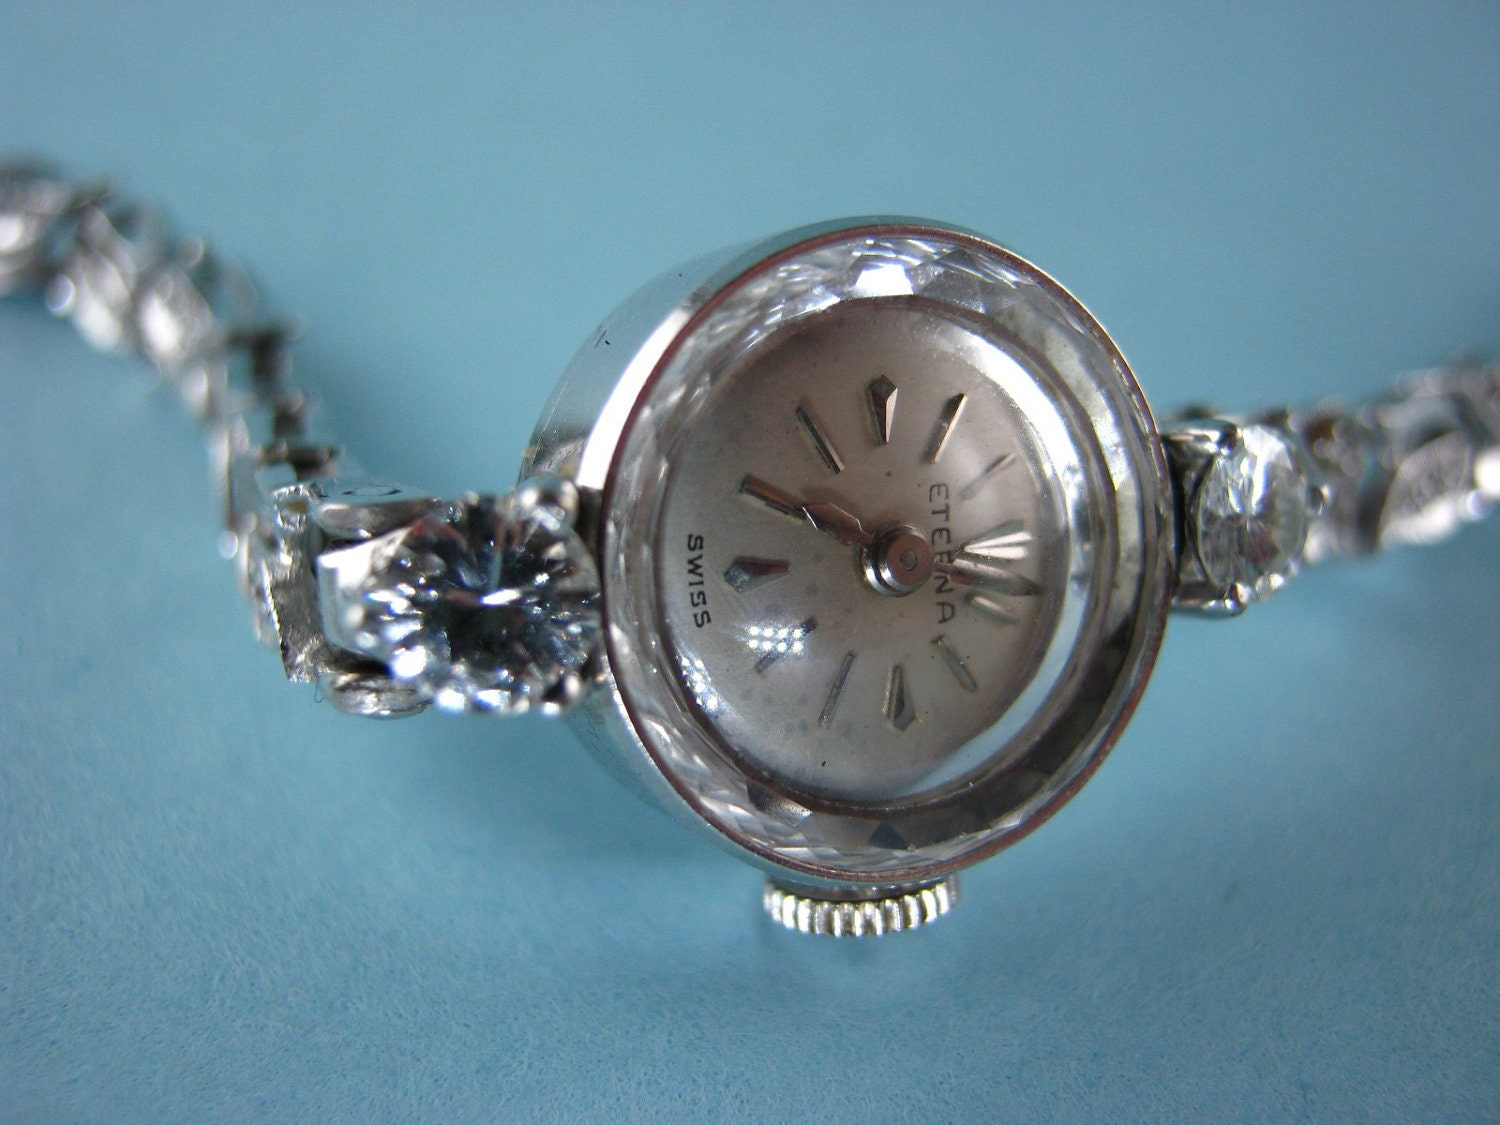 14k White Gold Ladies Eterna Watch with Large Diamonds